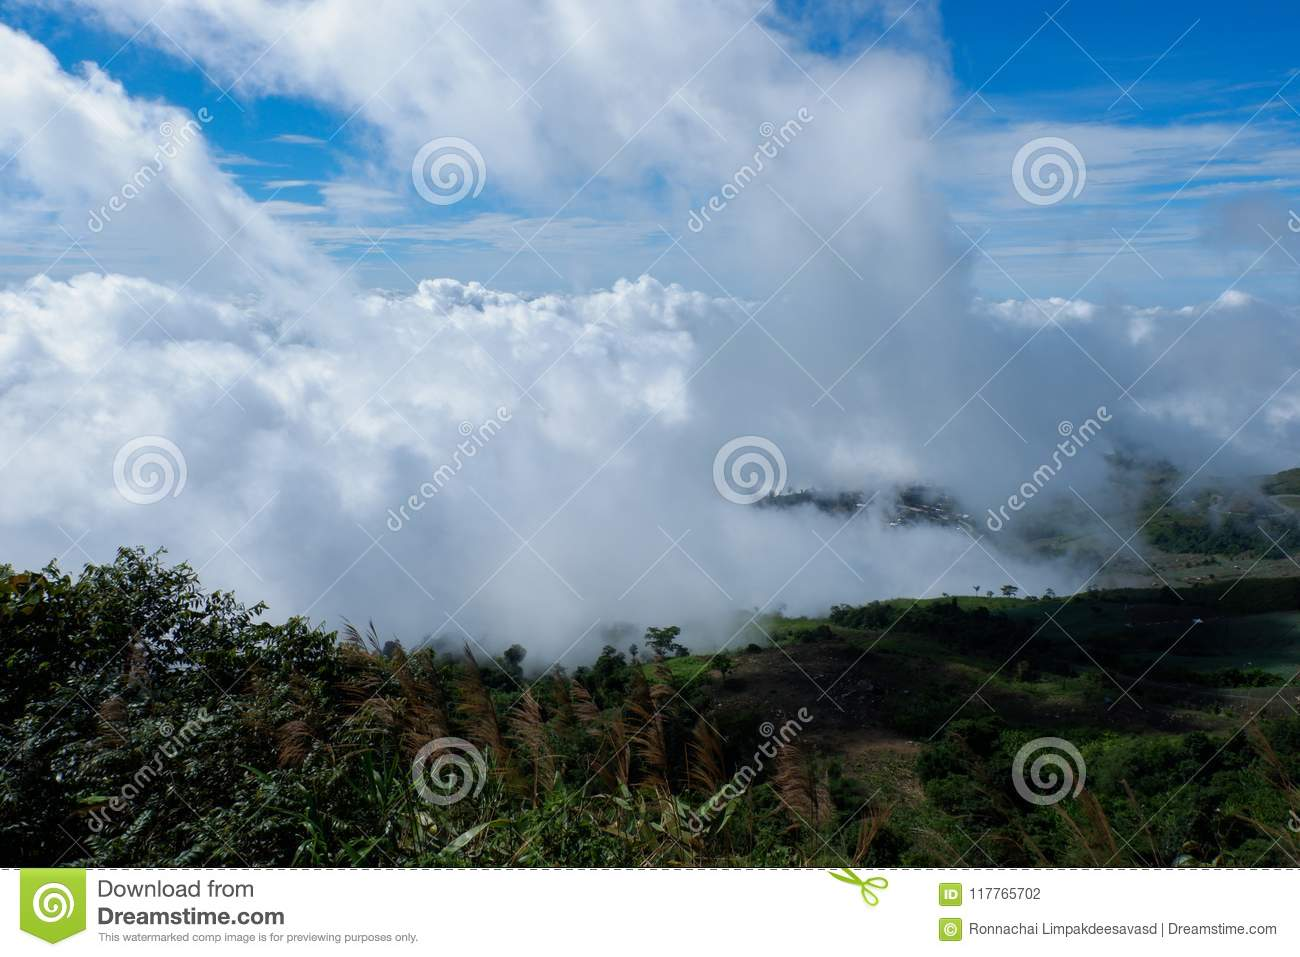 Morning Mountain View Through Forest Mountain Layers And Fog Early Morning In The Mountain Forest Forest And Mountains Behind Blue Mountains And First